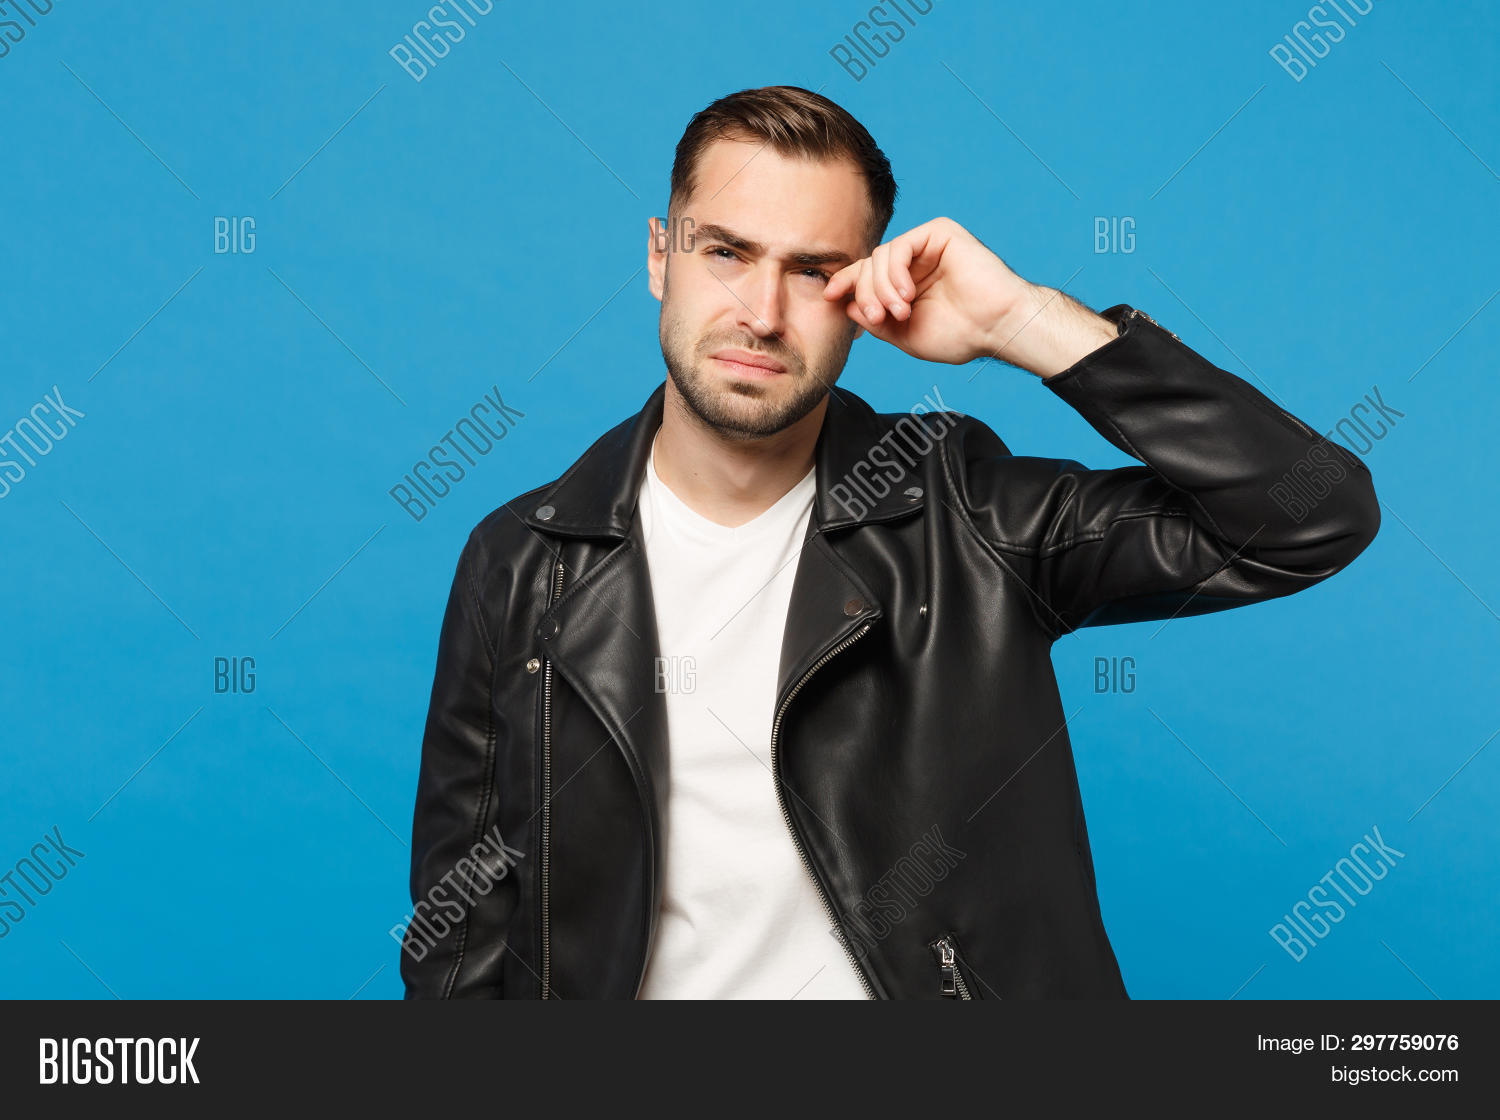 Young Sad Frustrated Image Photo Free Trial Bigstock